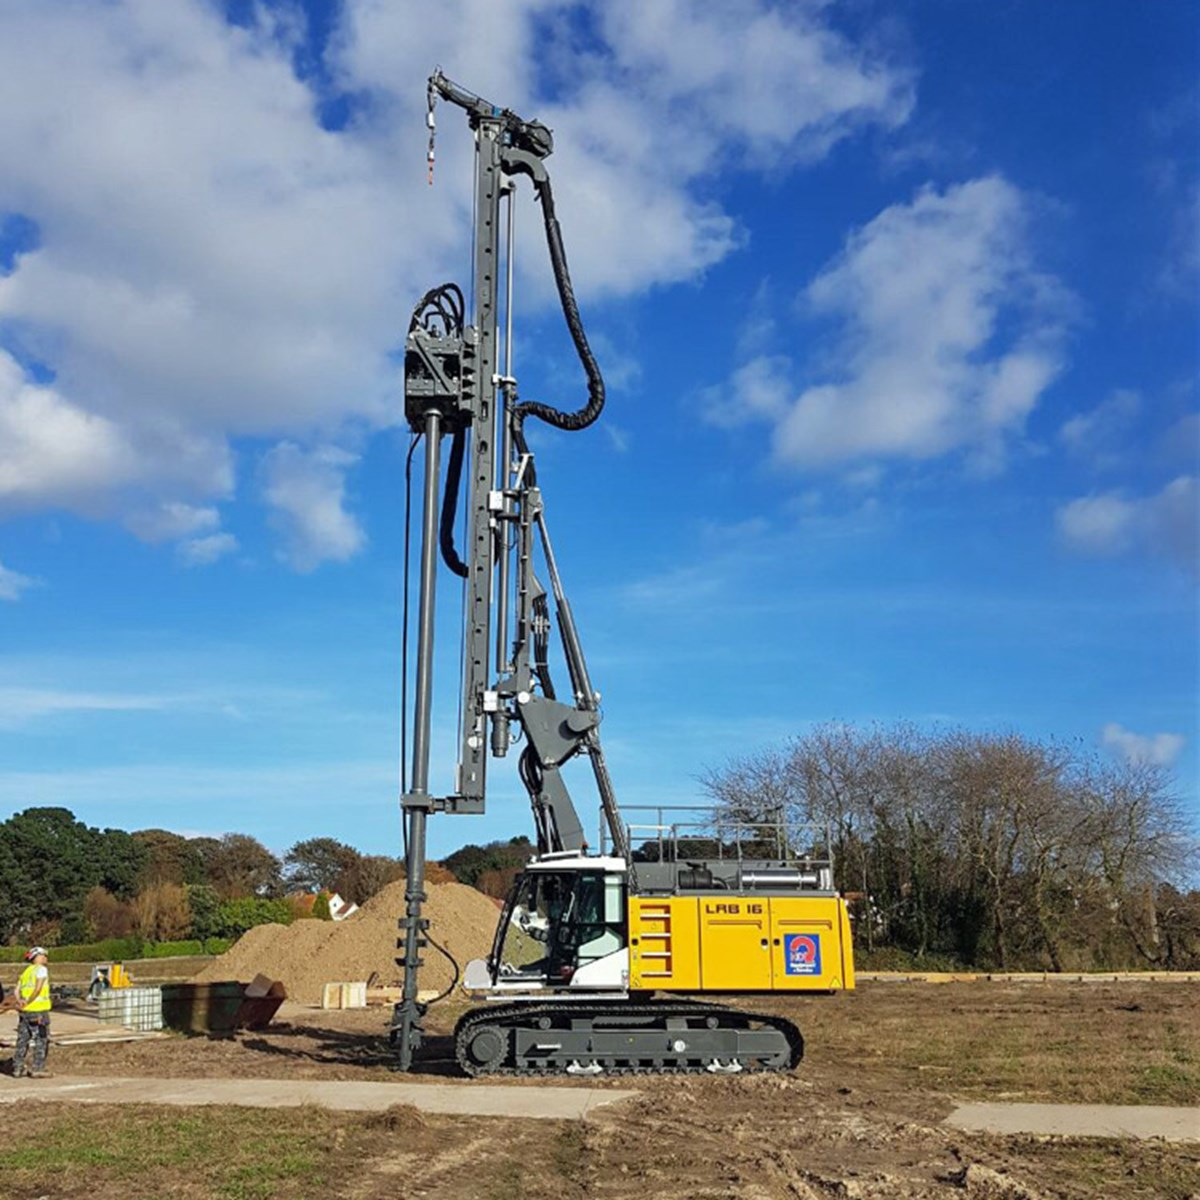 liebherr-piling-and-drilling-lrb-16-deep-foundation-soil-mixing-jersey-1.jpg